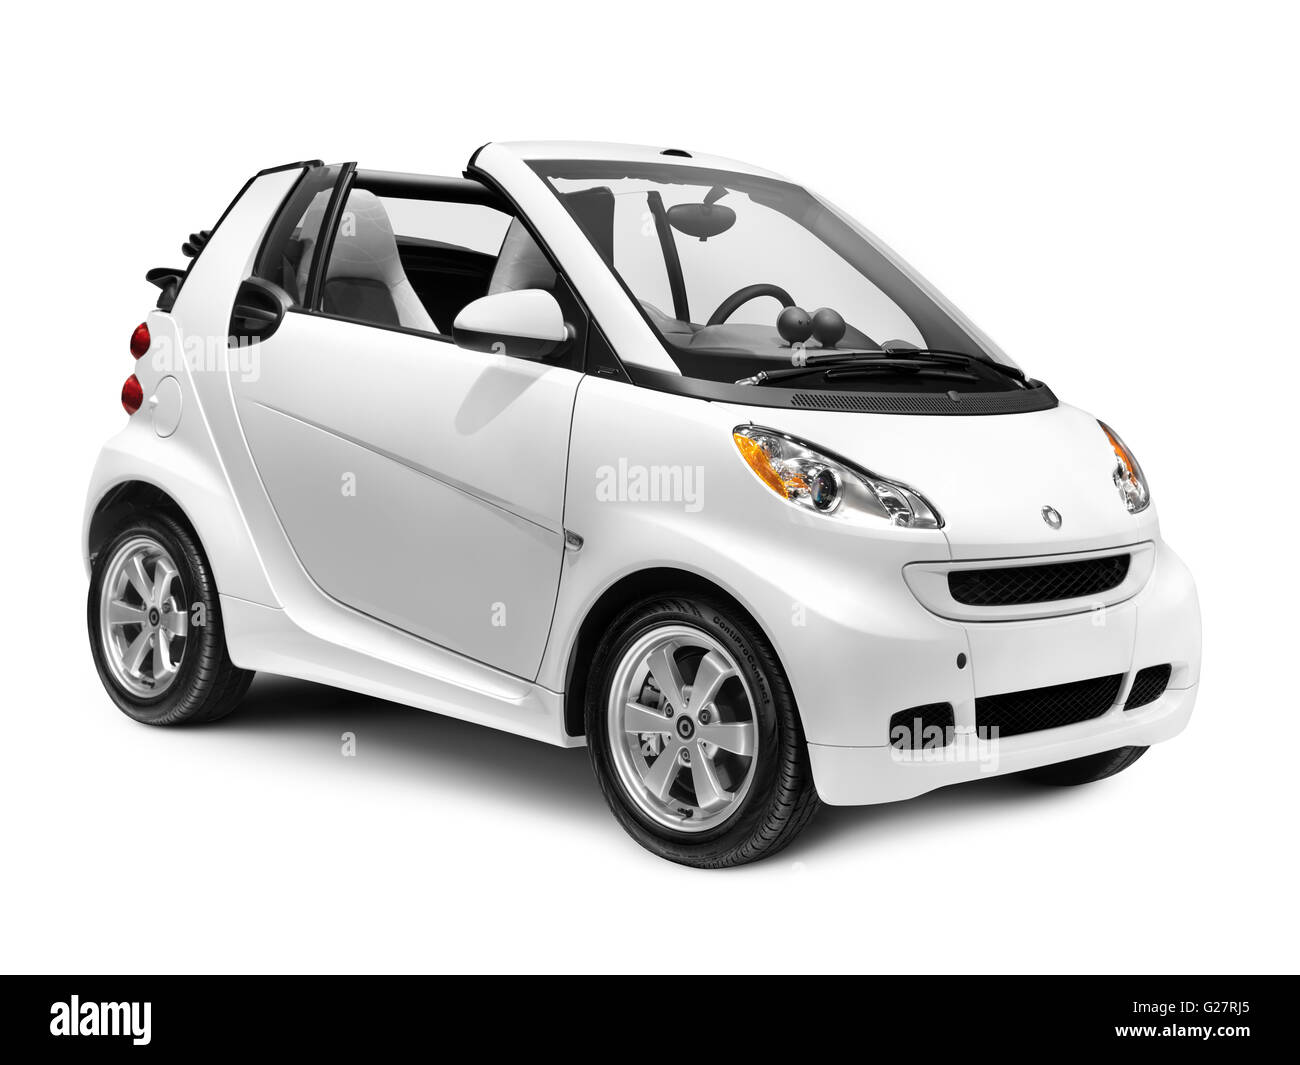 2012 Smart ForTwo Passion convertible - Stock Image